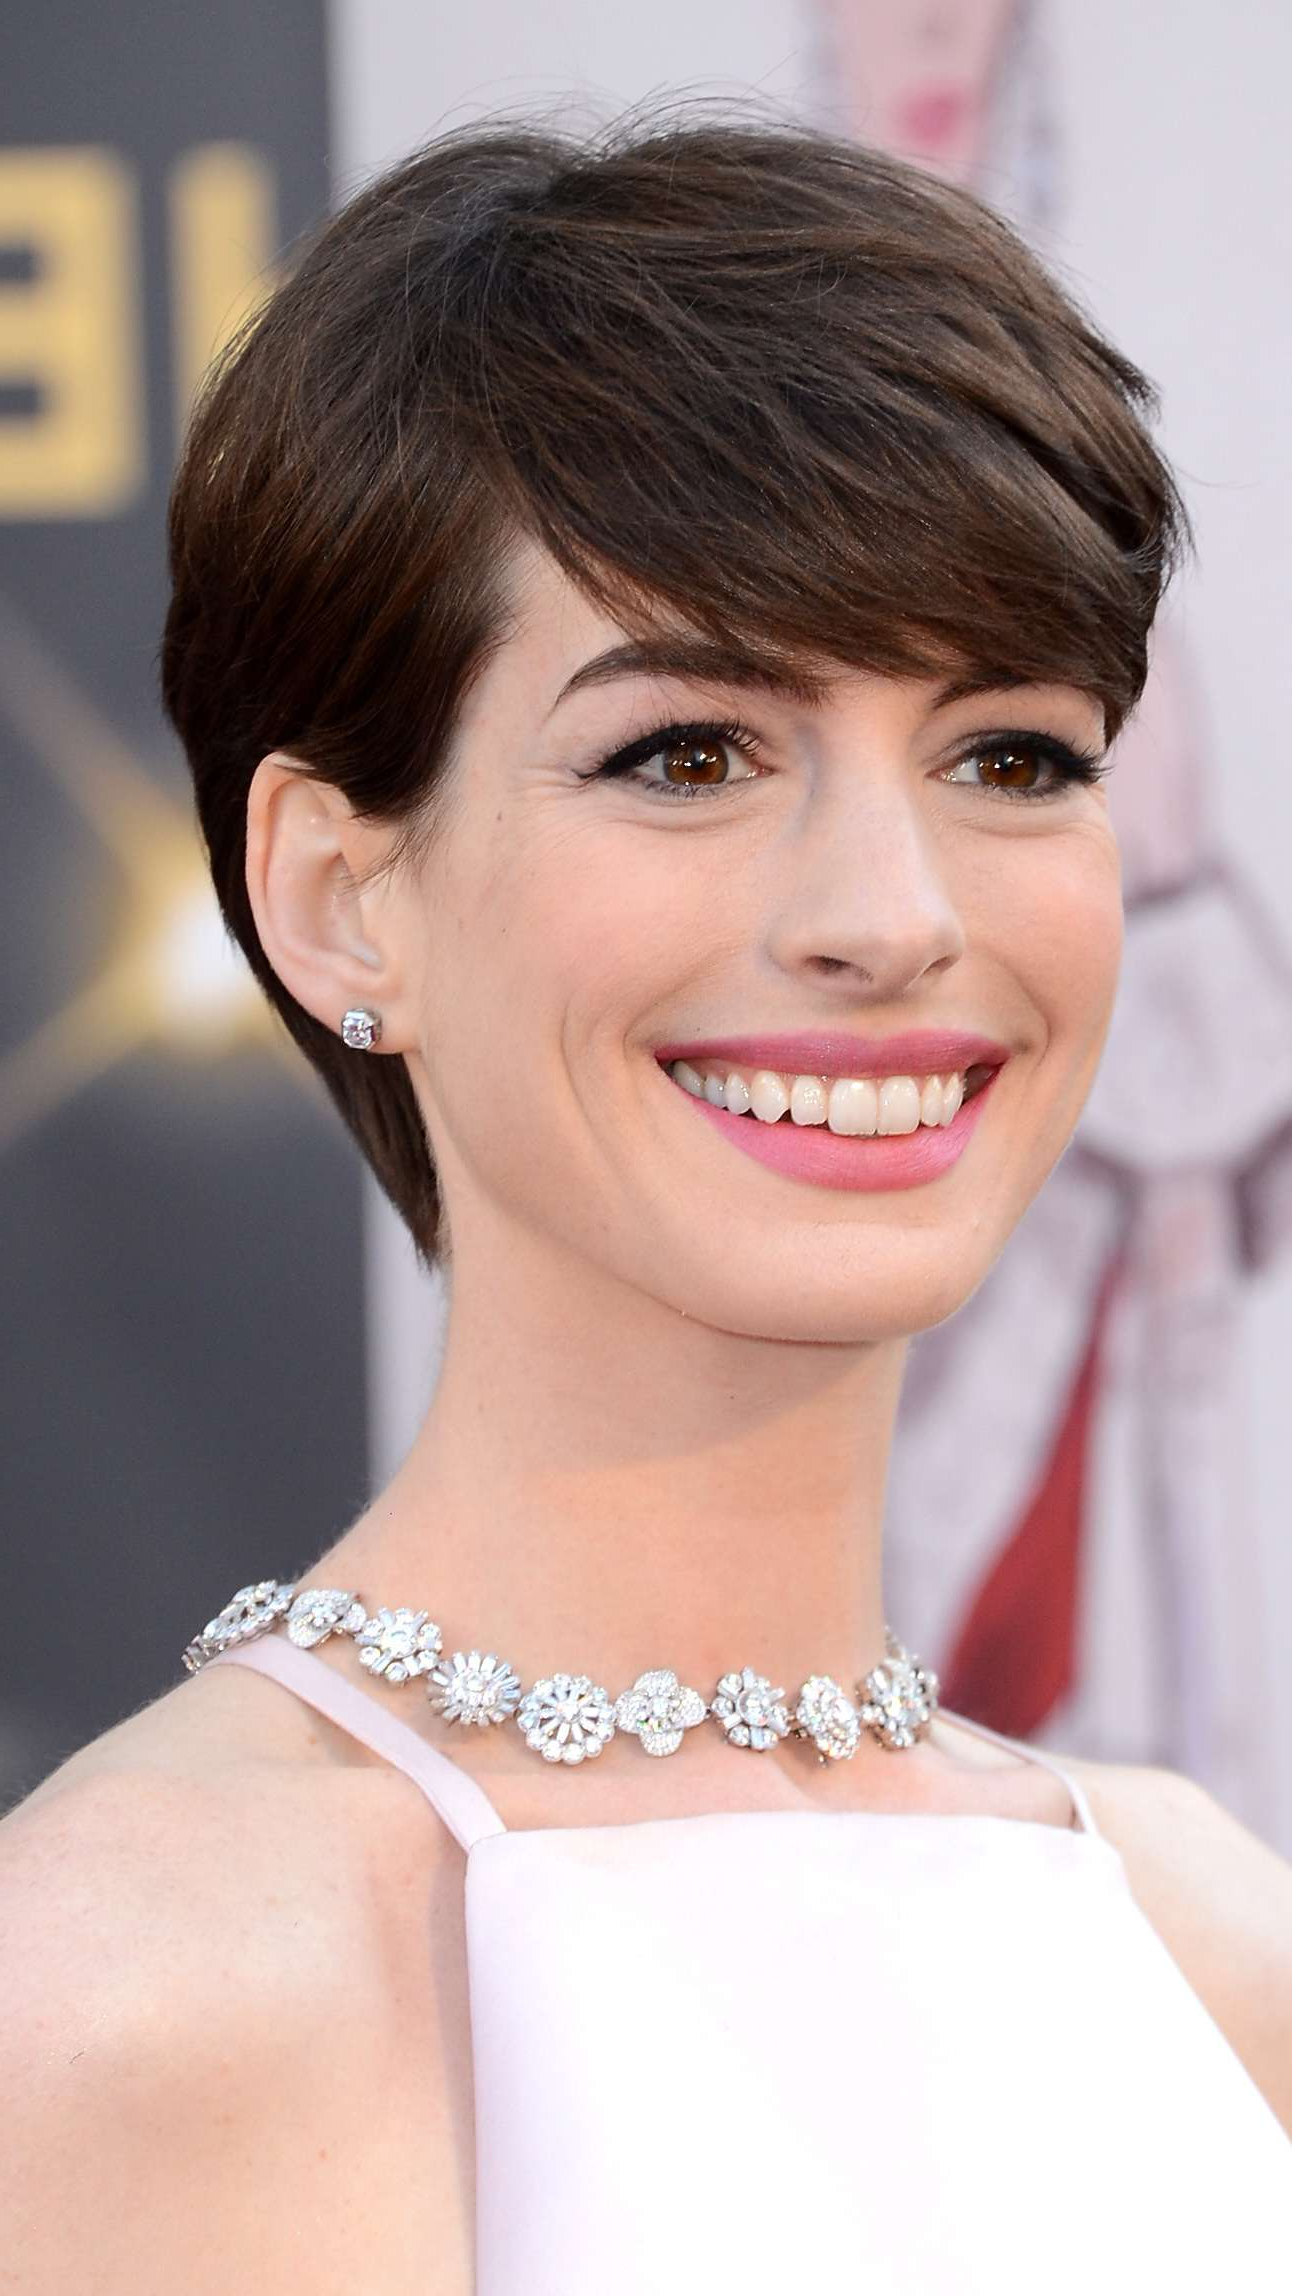 22 Inspiring Short Haircuts For Every Face Shape Inside Short Haircuts For Square Face Shape (View 5 of 25)